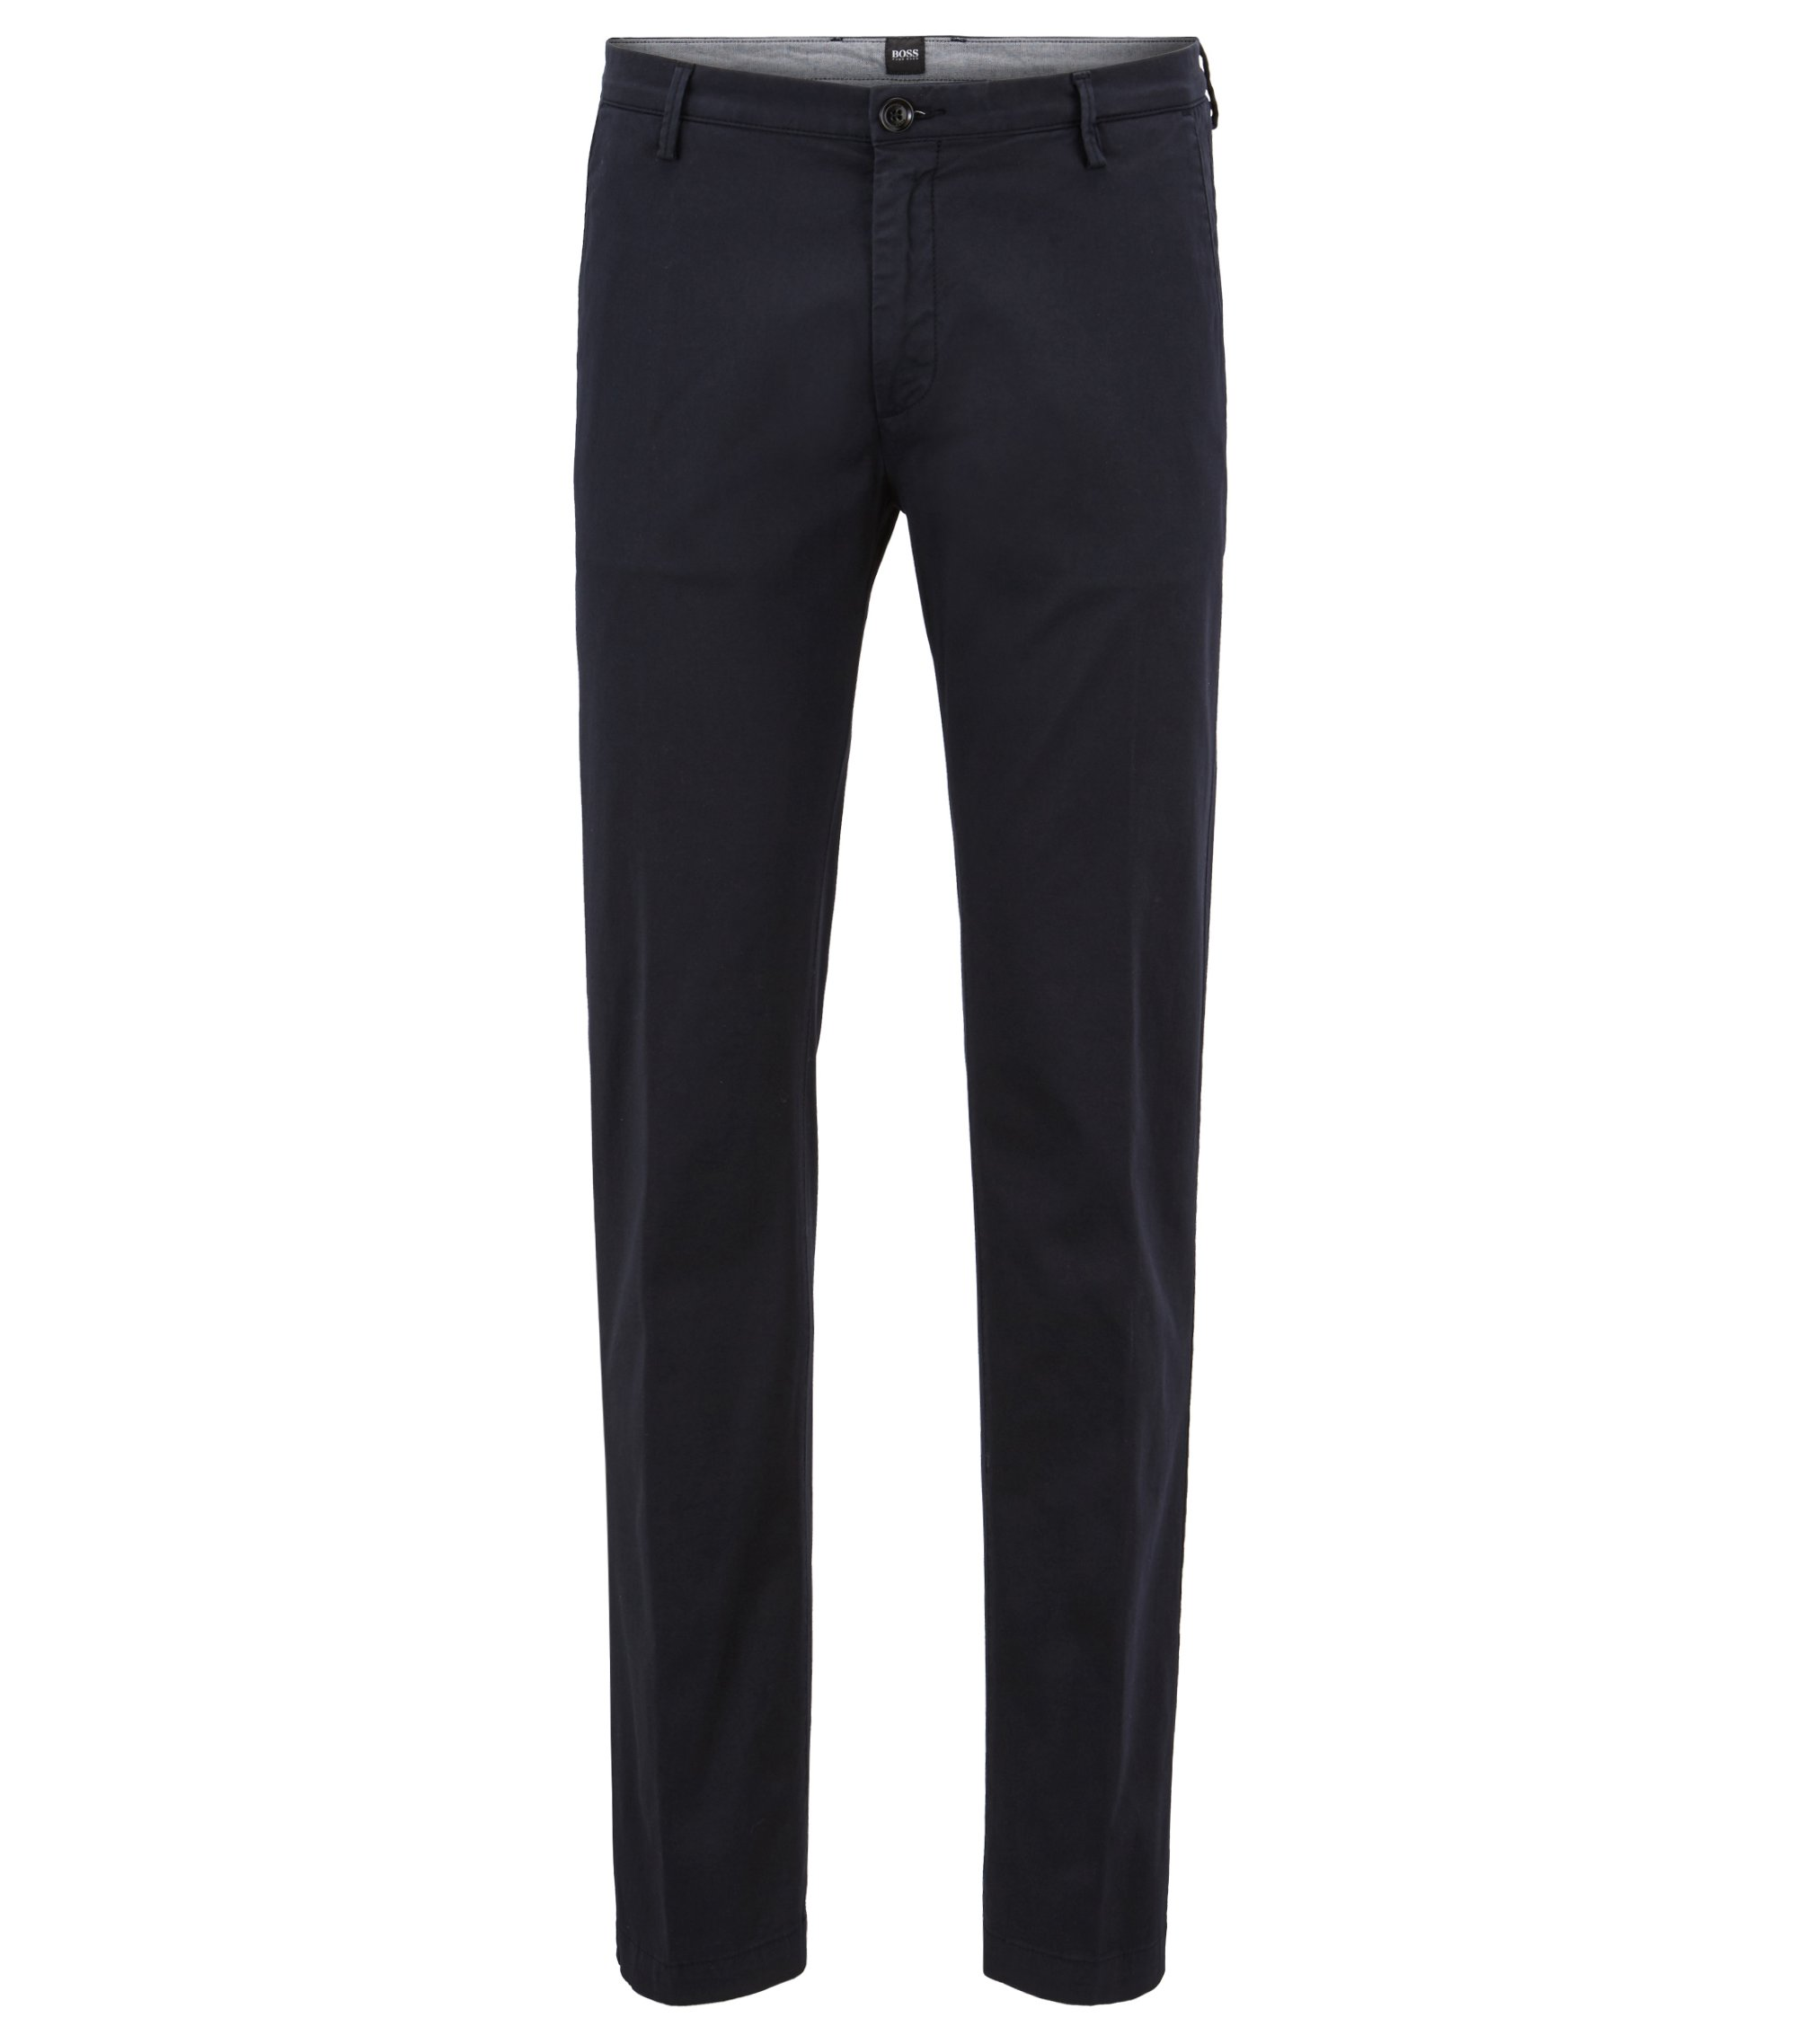 Cotton Stretch Chino Pant, Slim Fit | Rice D, Dark Blue